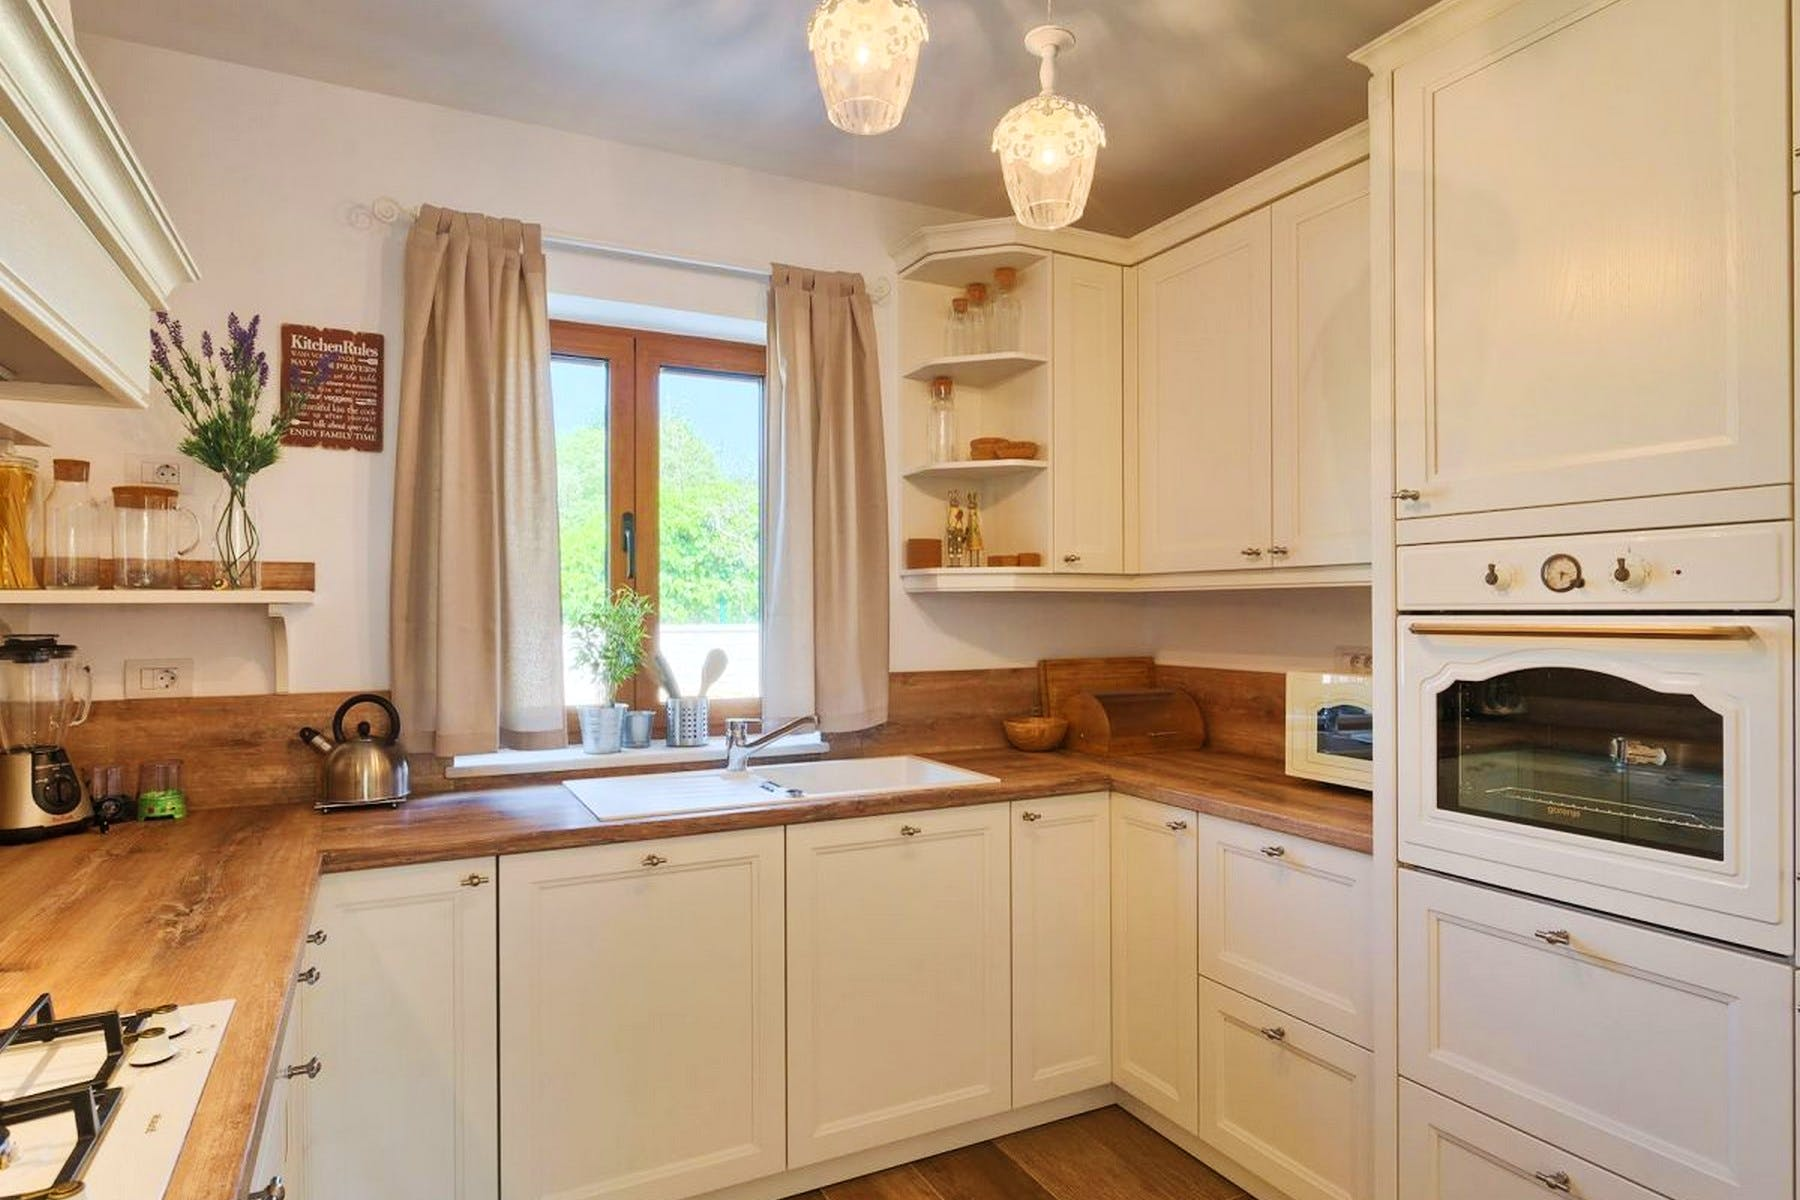 Fully fitted and functional kitchen